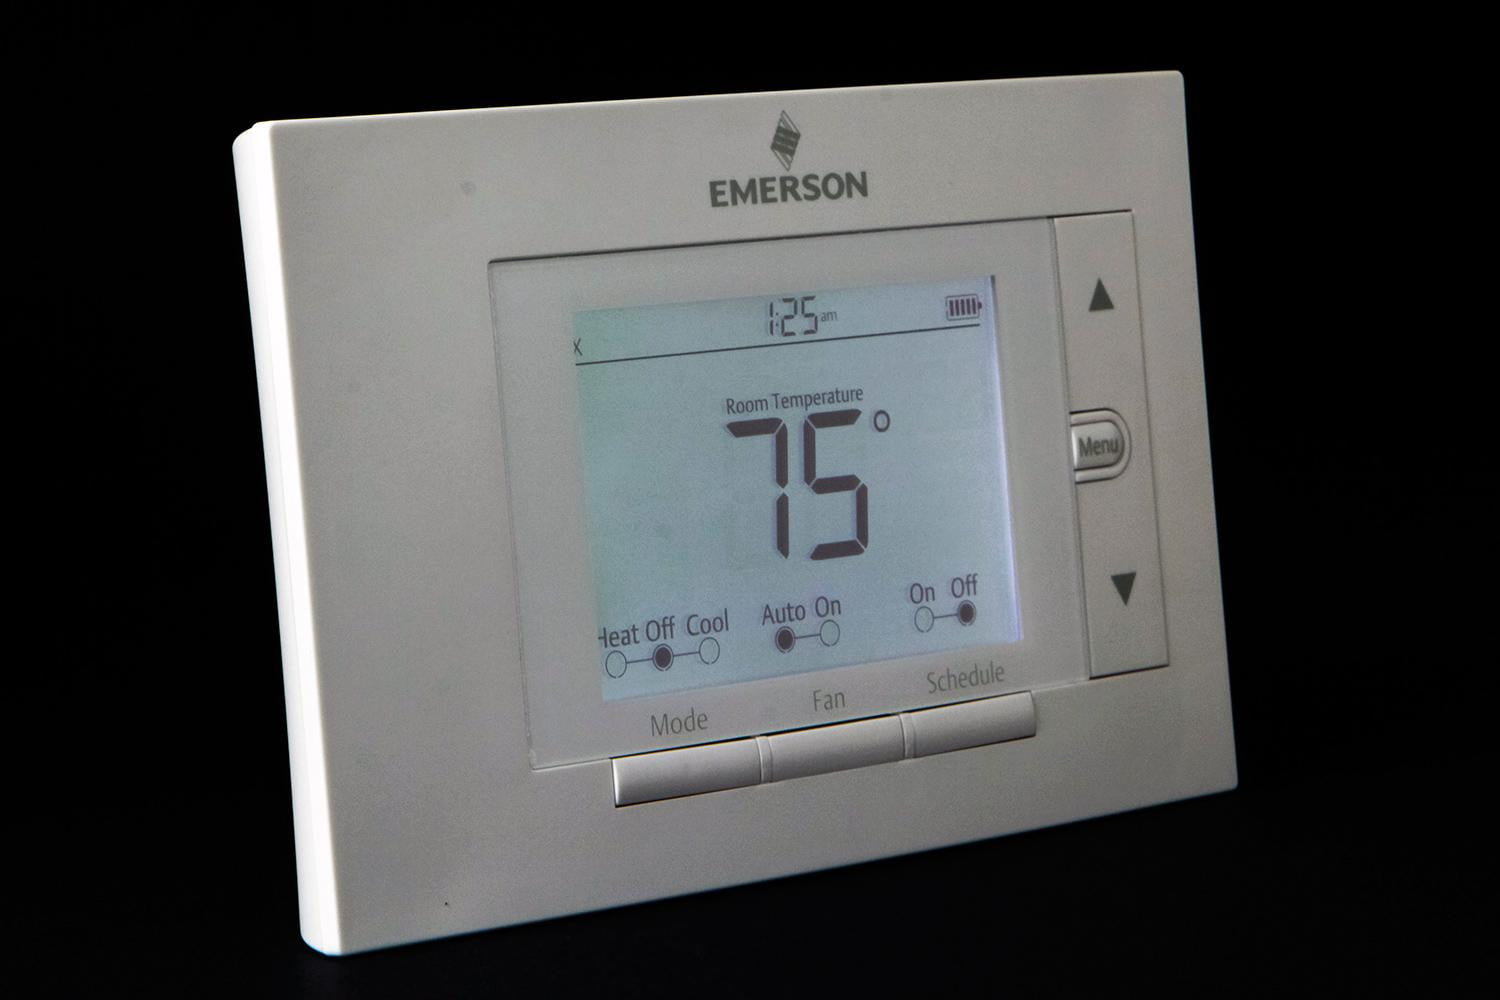 emerson sensi thermometer review front light 1500x1000?ver=1 emerson sensi thermostat review digital trends wiring diagram for a emerson up310 thermostat at eliteediting.co